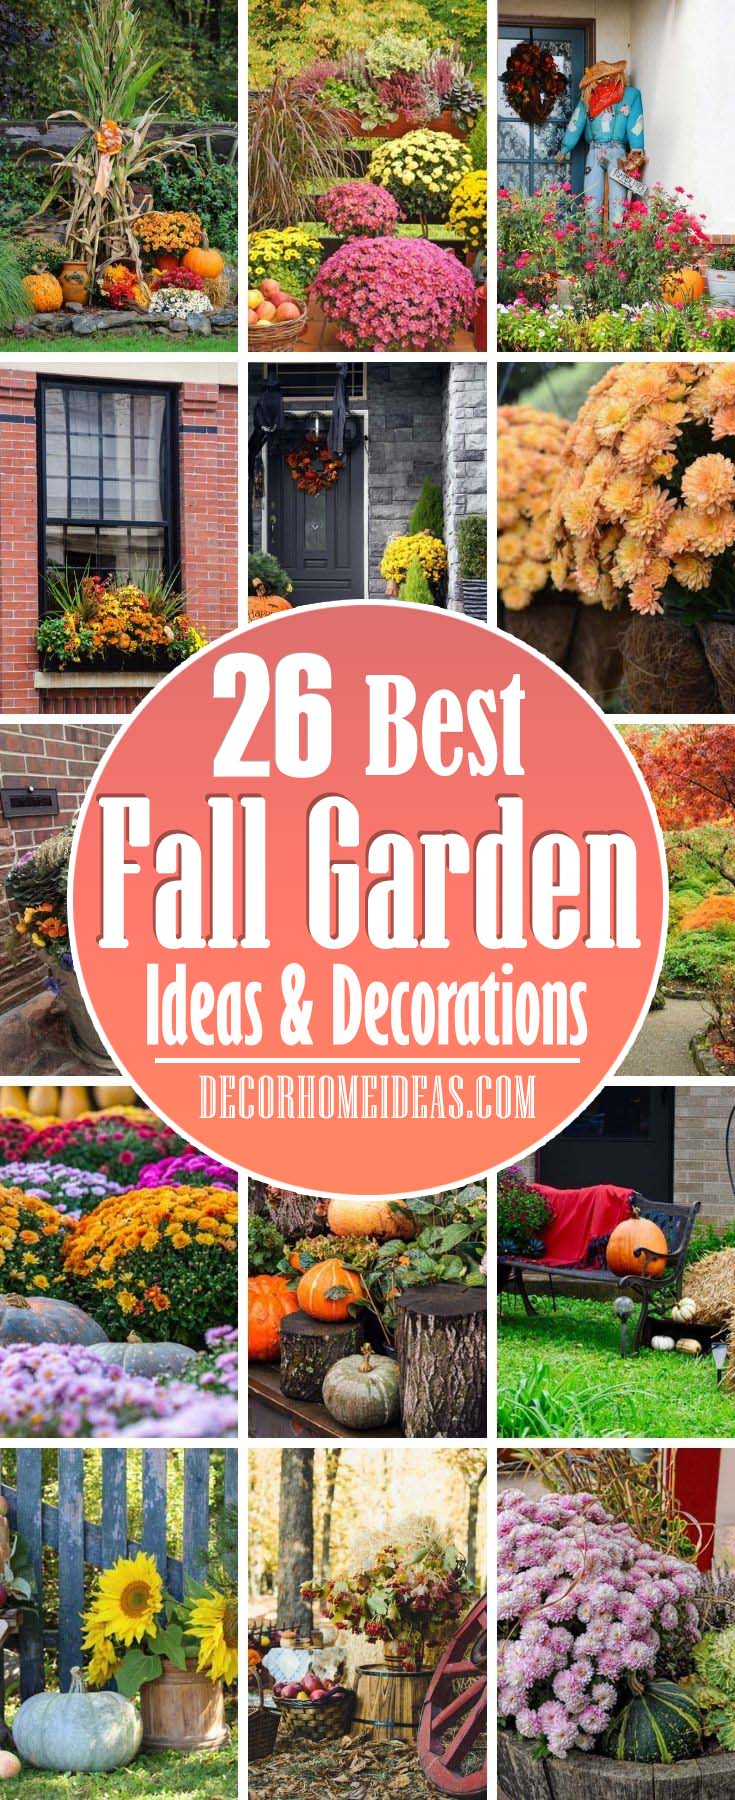 Best Fall Gardening Ideas And Decorations. Get the best ideas for extending the gardening season into autumn and find out what chores to complete to make sure your garden is the most beautiful in the neighborhood. #decorhomeideas